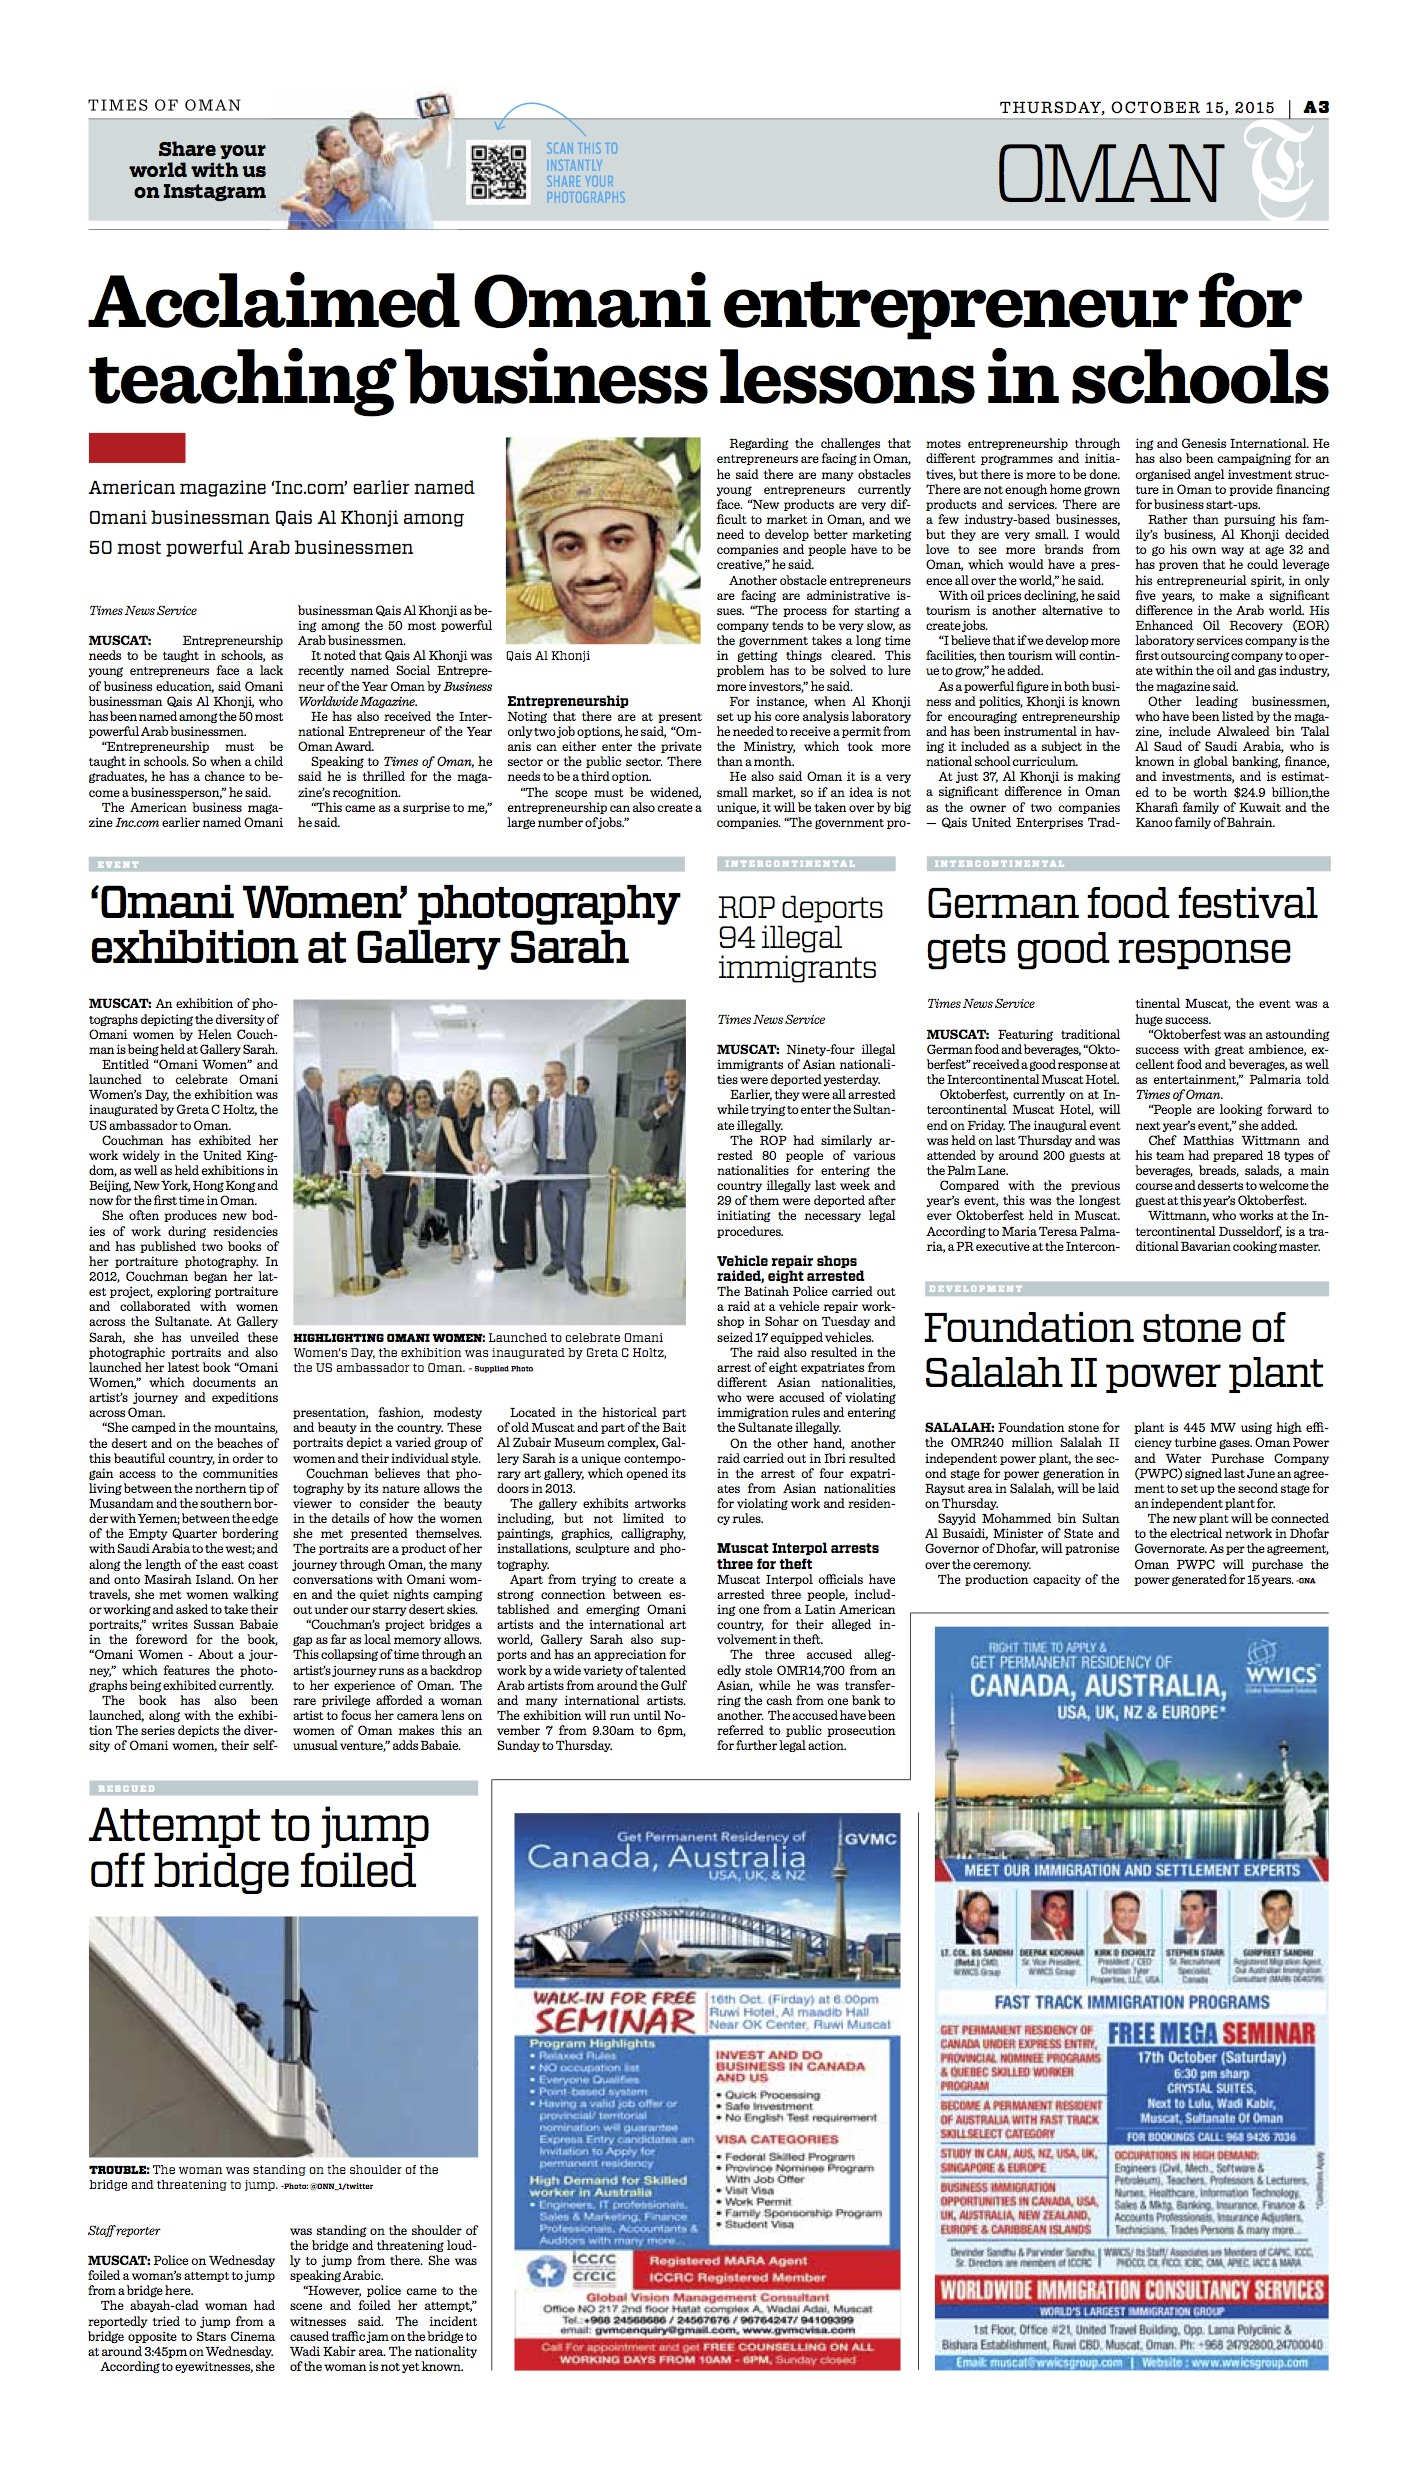 Omani Women article, Times of Oman. Thursday 15 October 2015